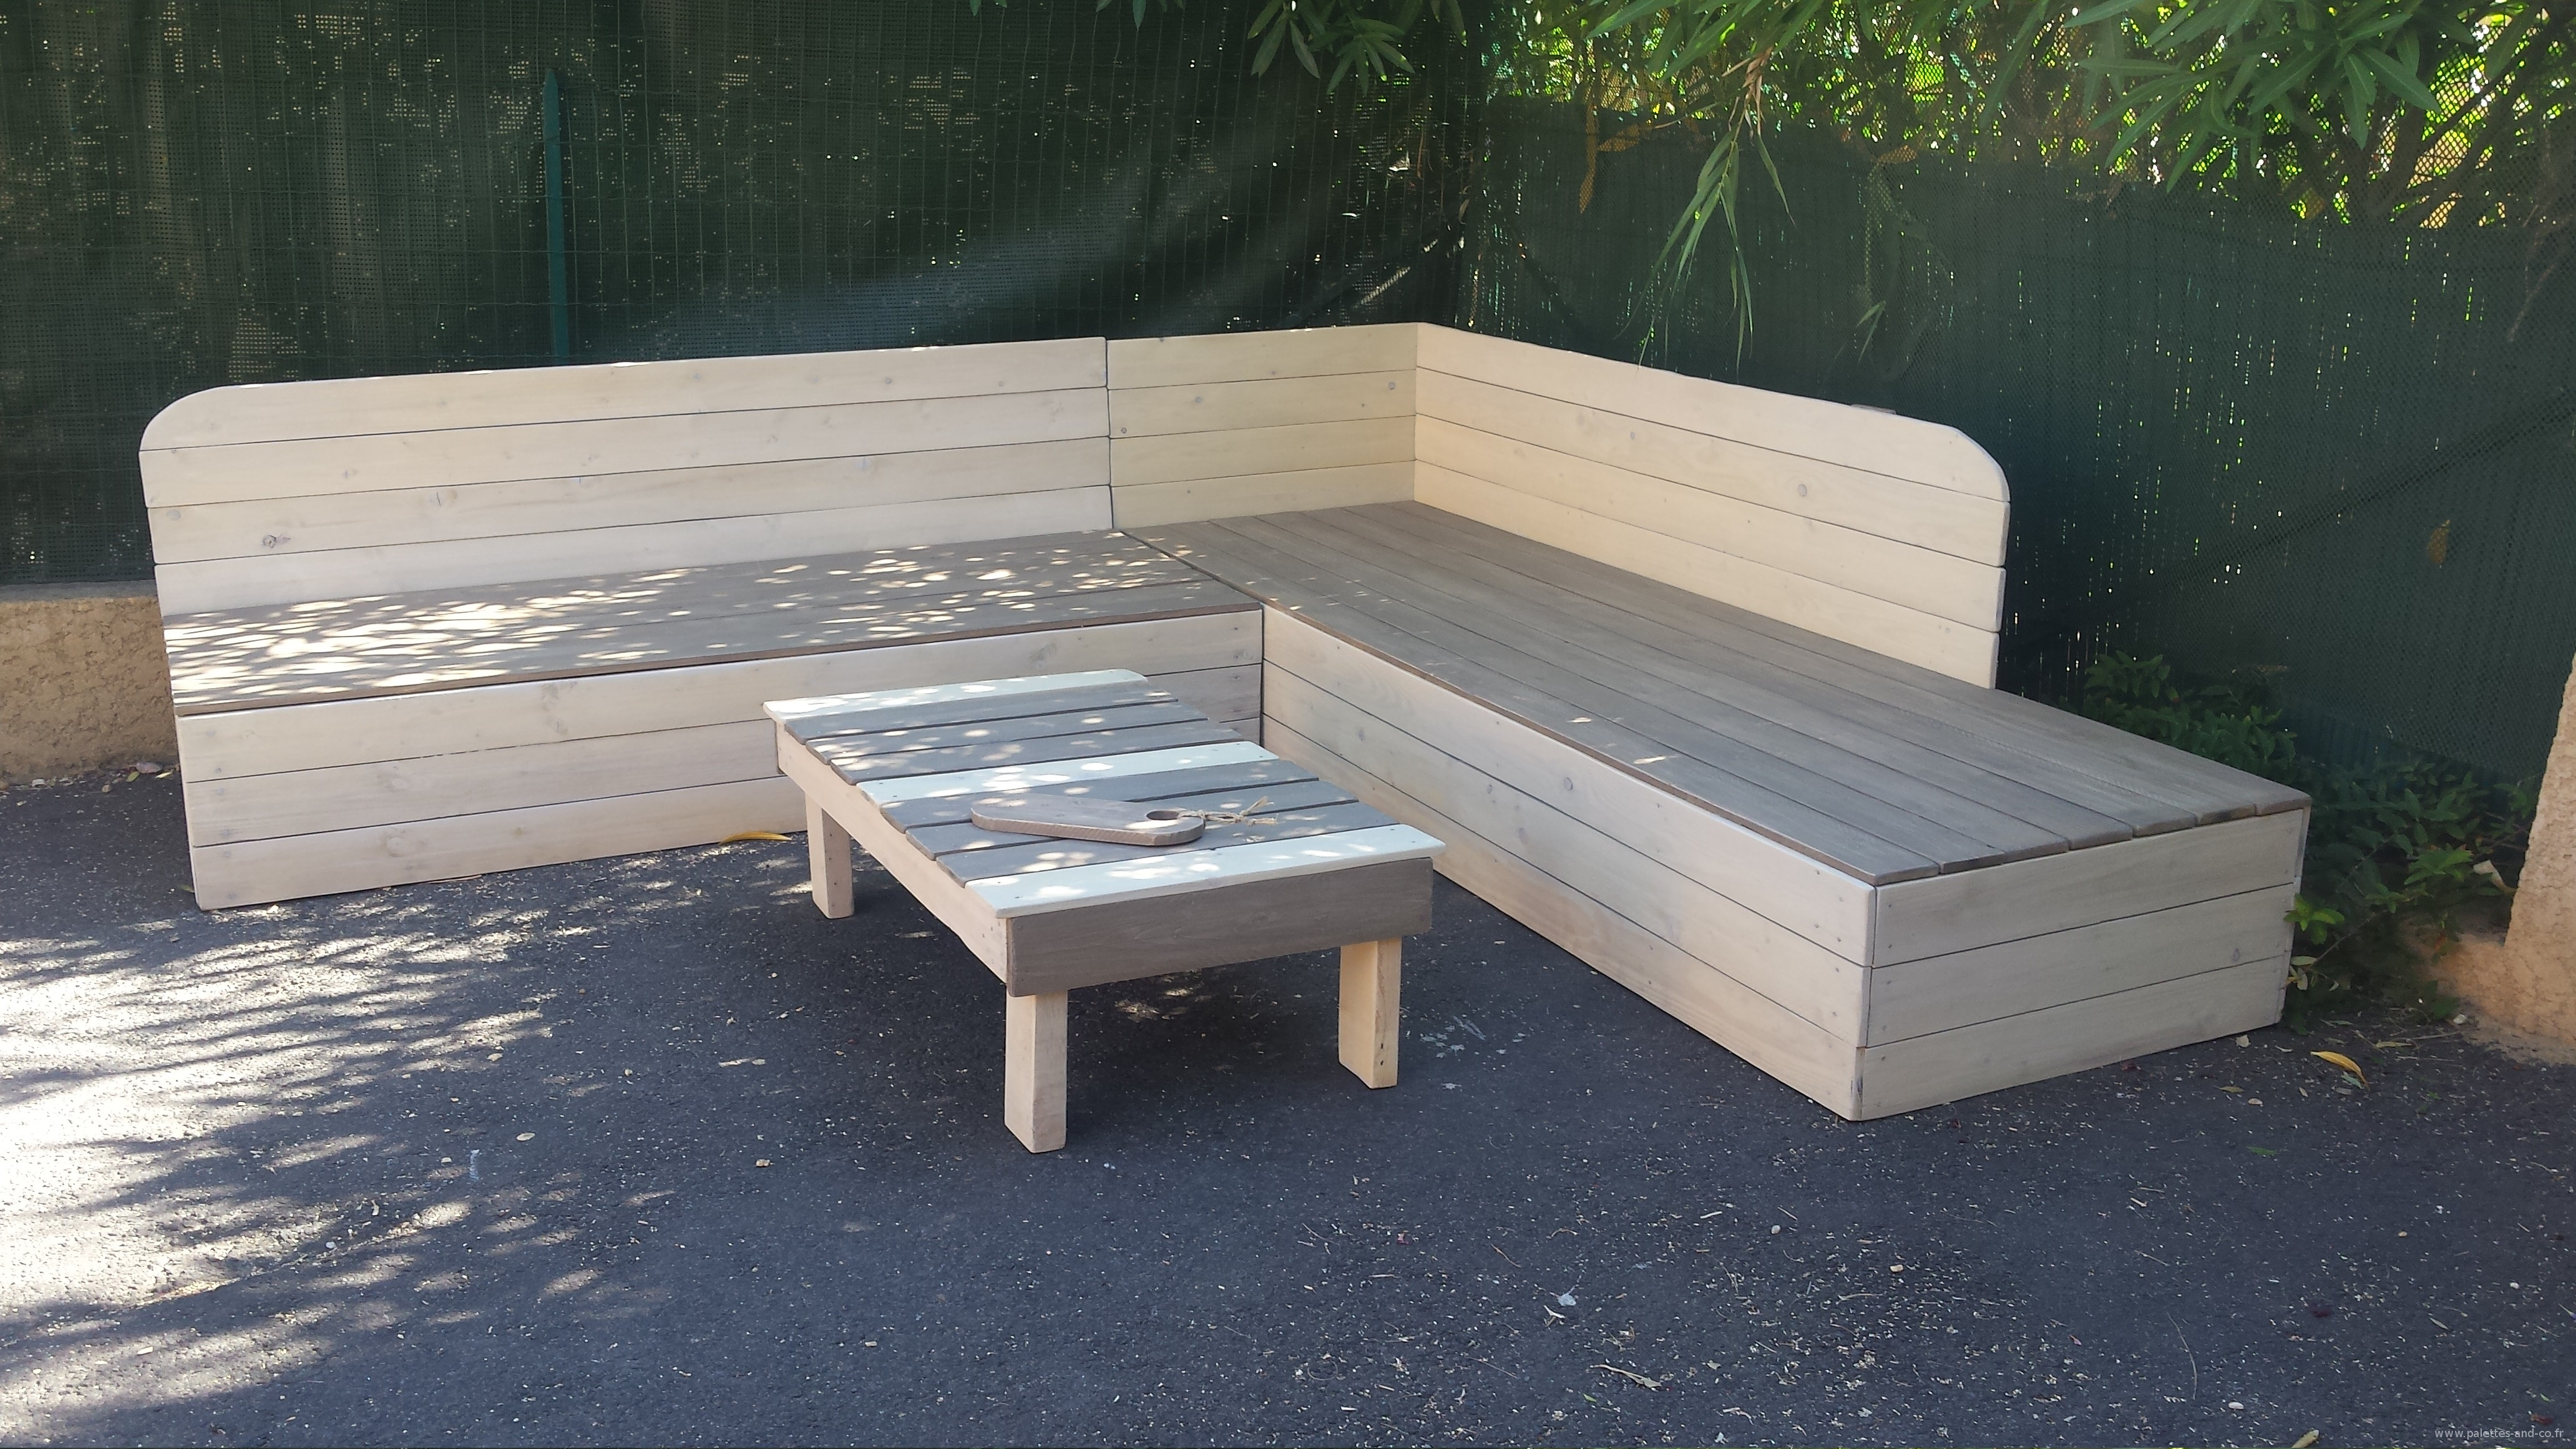 Banc terrasse bois fashion designs for Banc avec palette